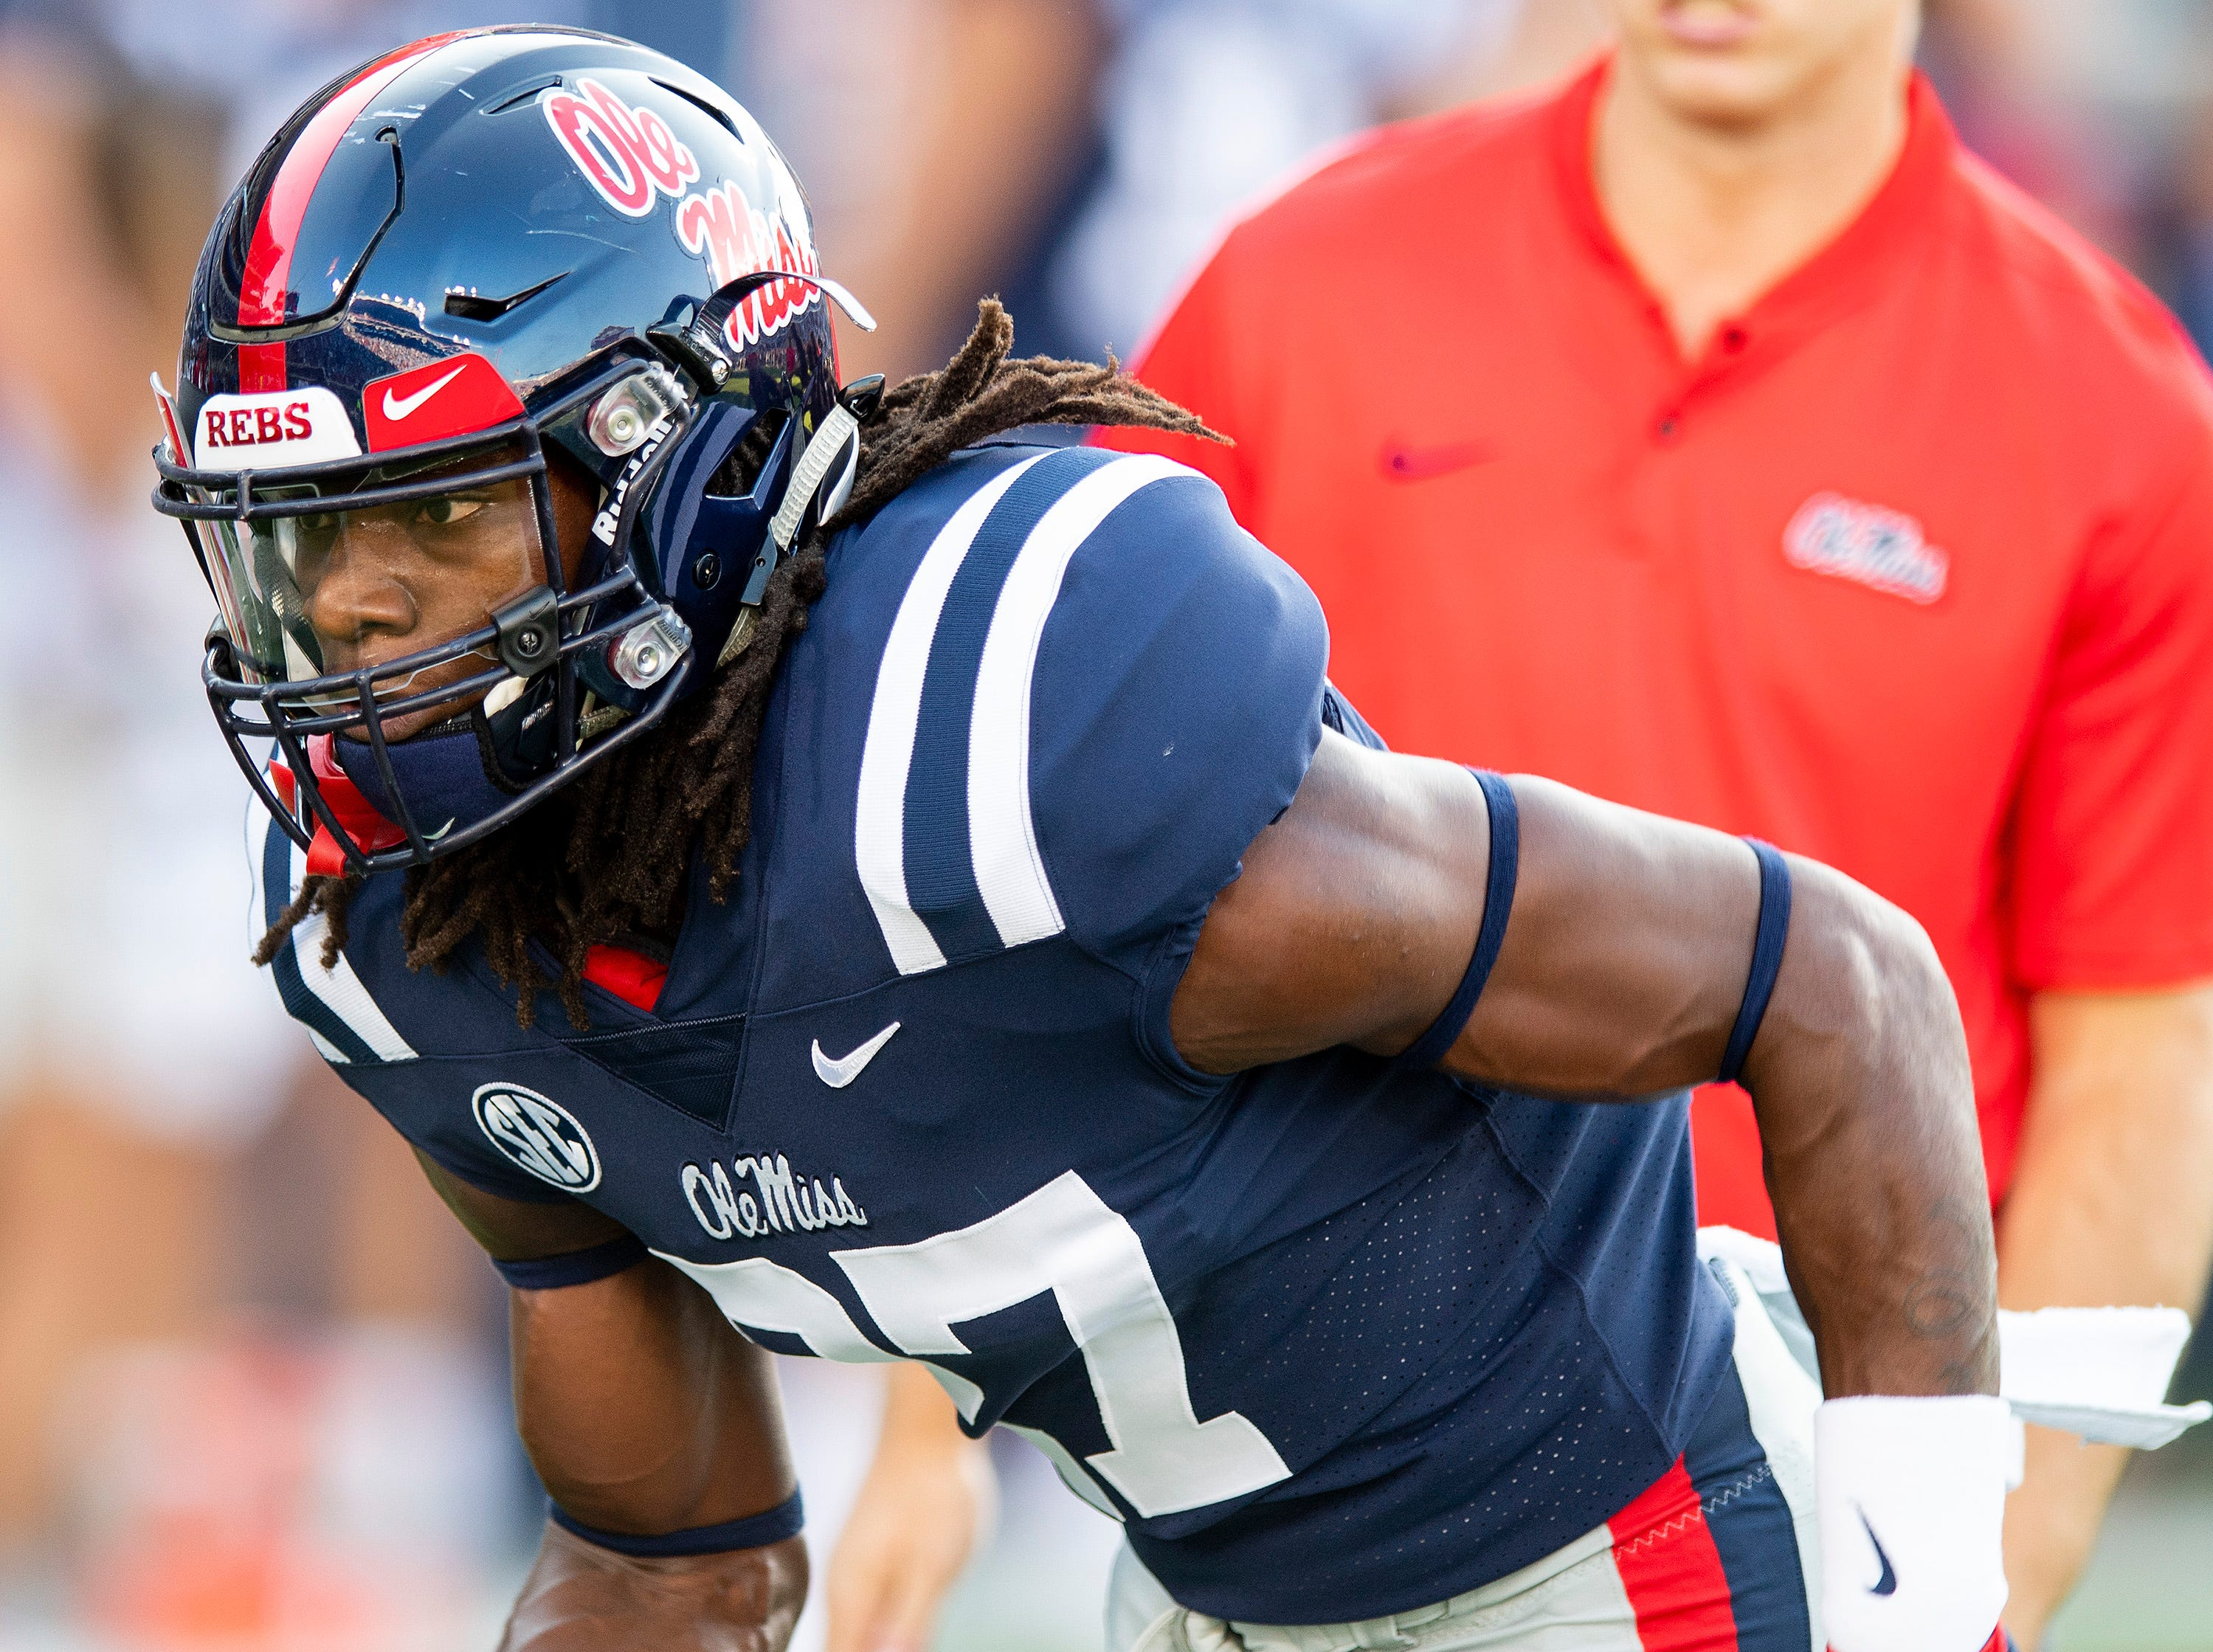 Ole Miss linebacker Kevontae' Ruggs (27) during warm ups in Oxford, Ms., on Saturday September 15, 2018.